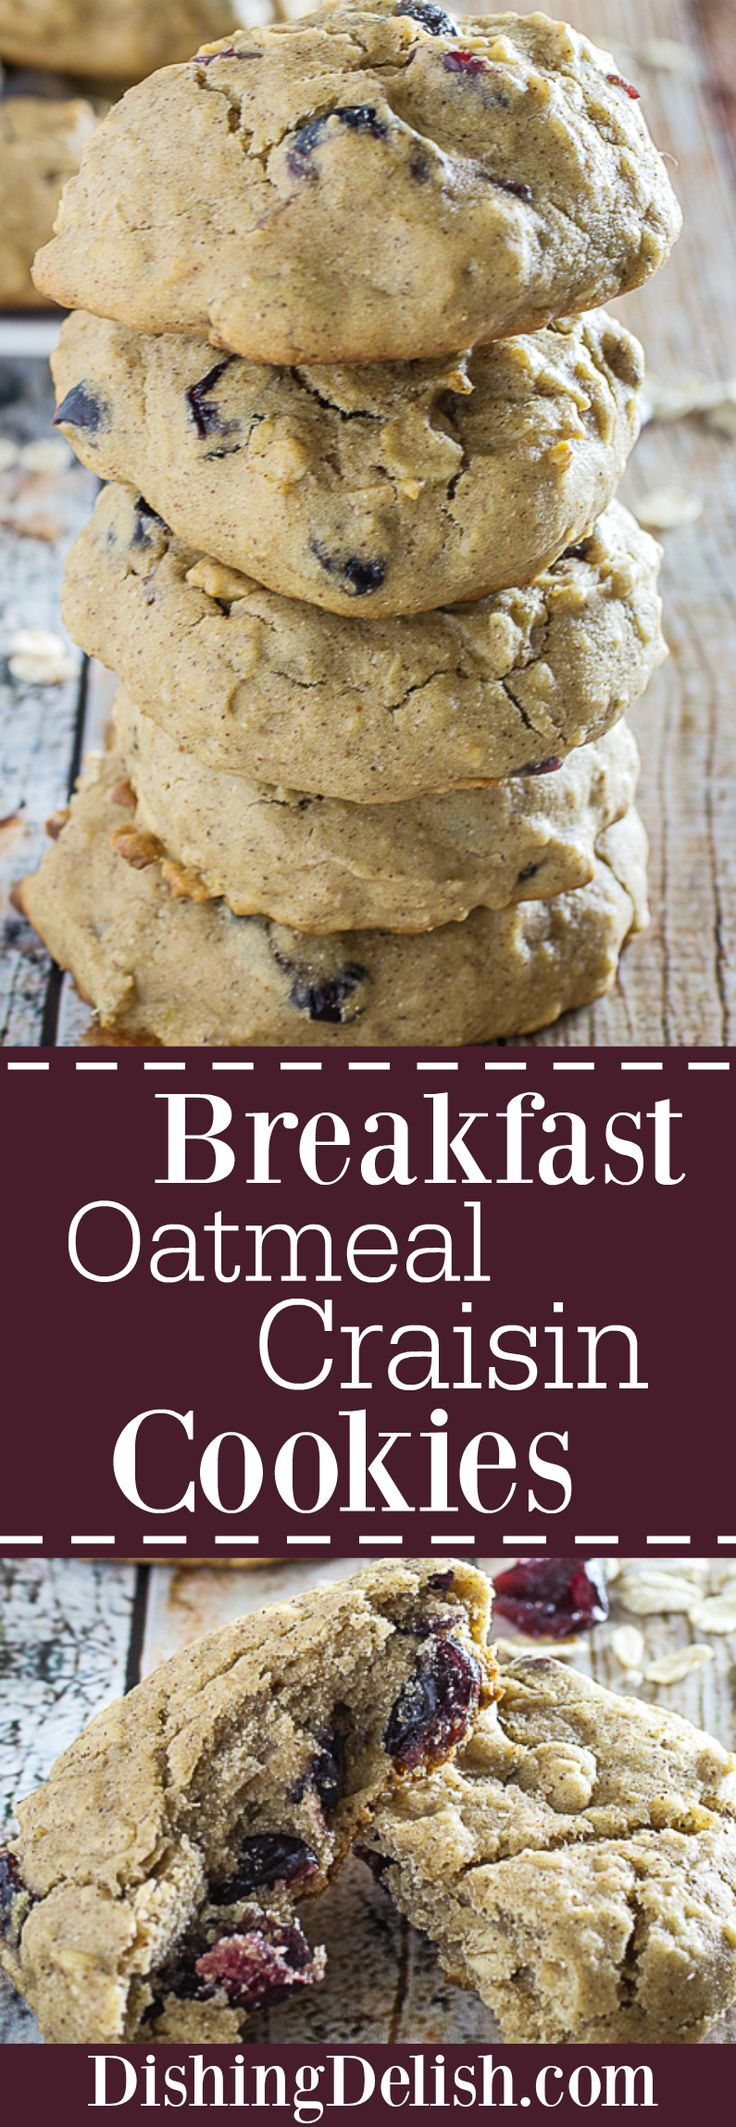 Gluten Free Breakfast Oatmeal Craisin Cookies bring my two favorite things in the world into one delicious morsel: Breakfast and Cookies! Sweet craisins make this cookie pop, along with wholesome oats, cinnamon, and allspice. These are perfect for running out the door in the morning, or savoring with a hot cup of coffee.